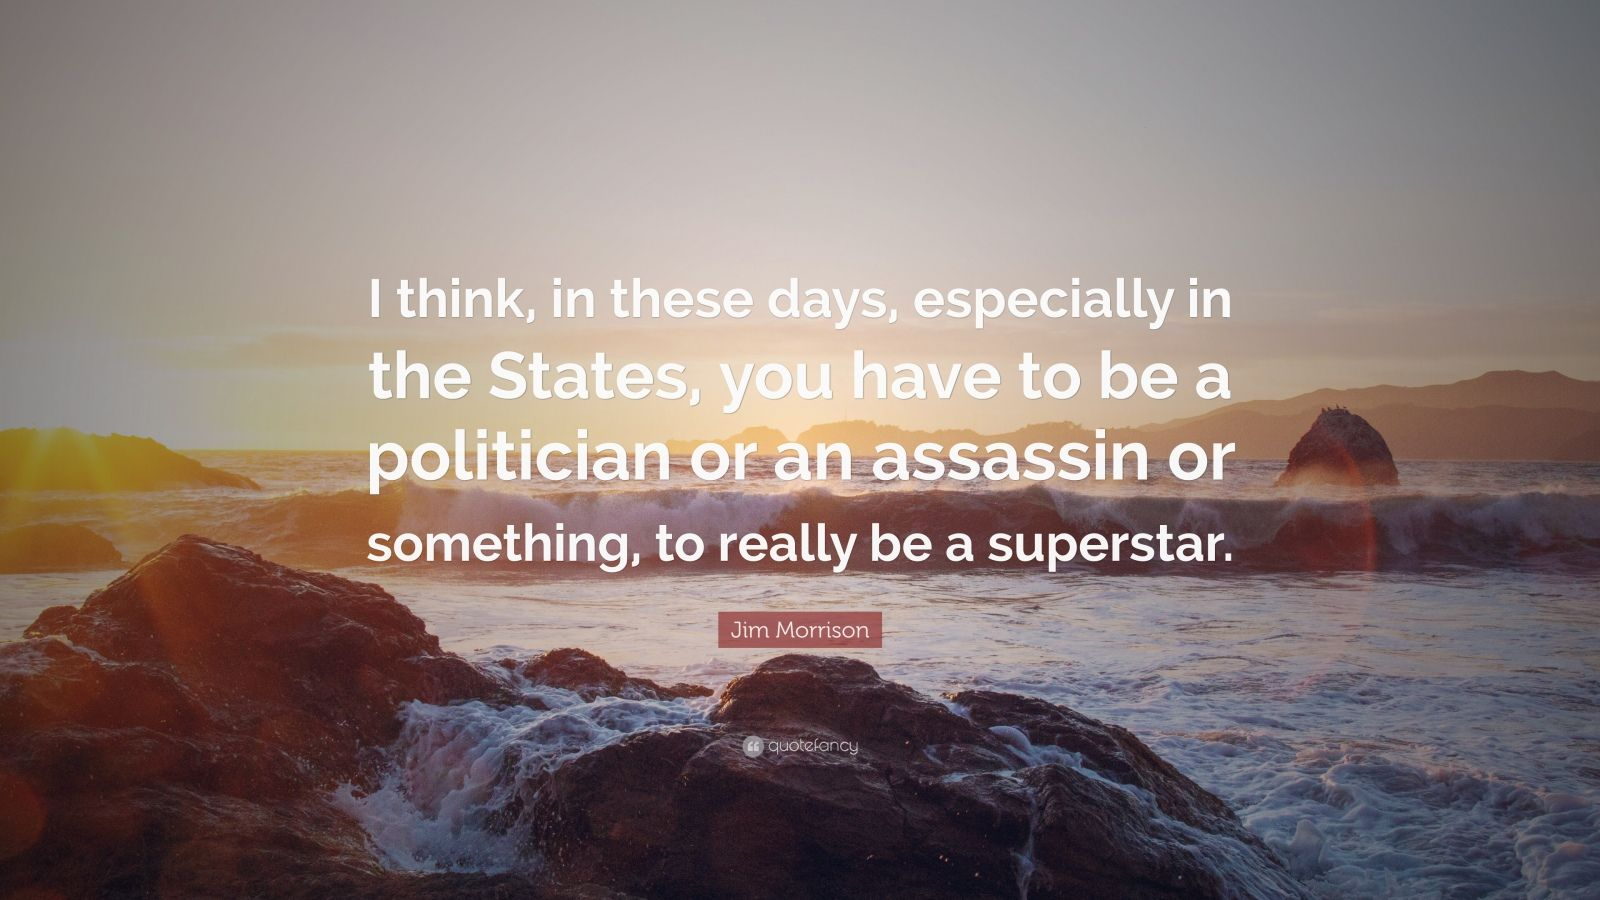 """Jim Morrison Quote: """"I think, in these days, especially in the States, you have to be a politician or an assassin or something, to really be a superstar."""""""